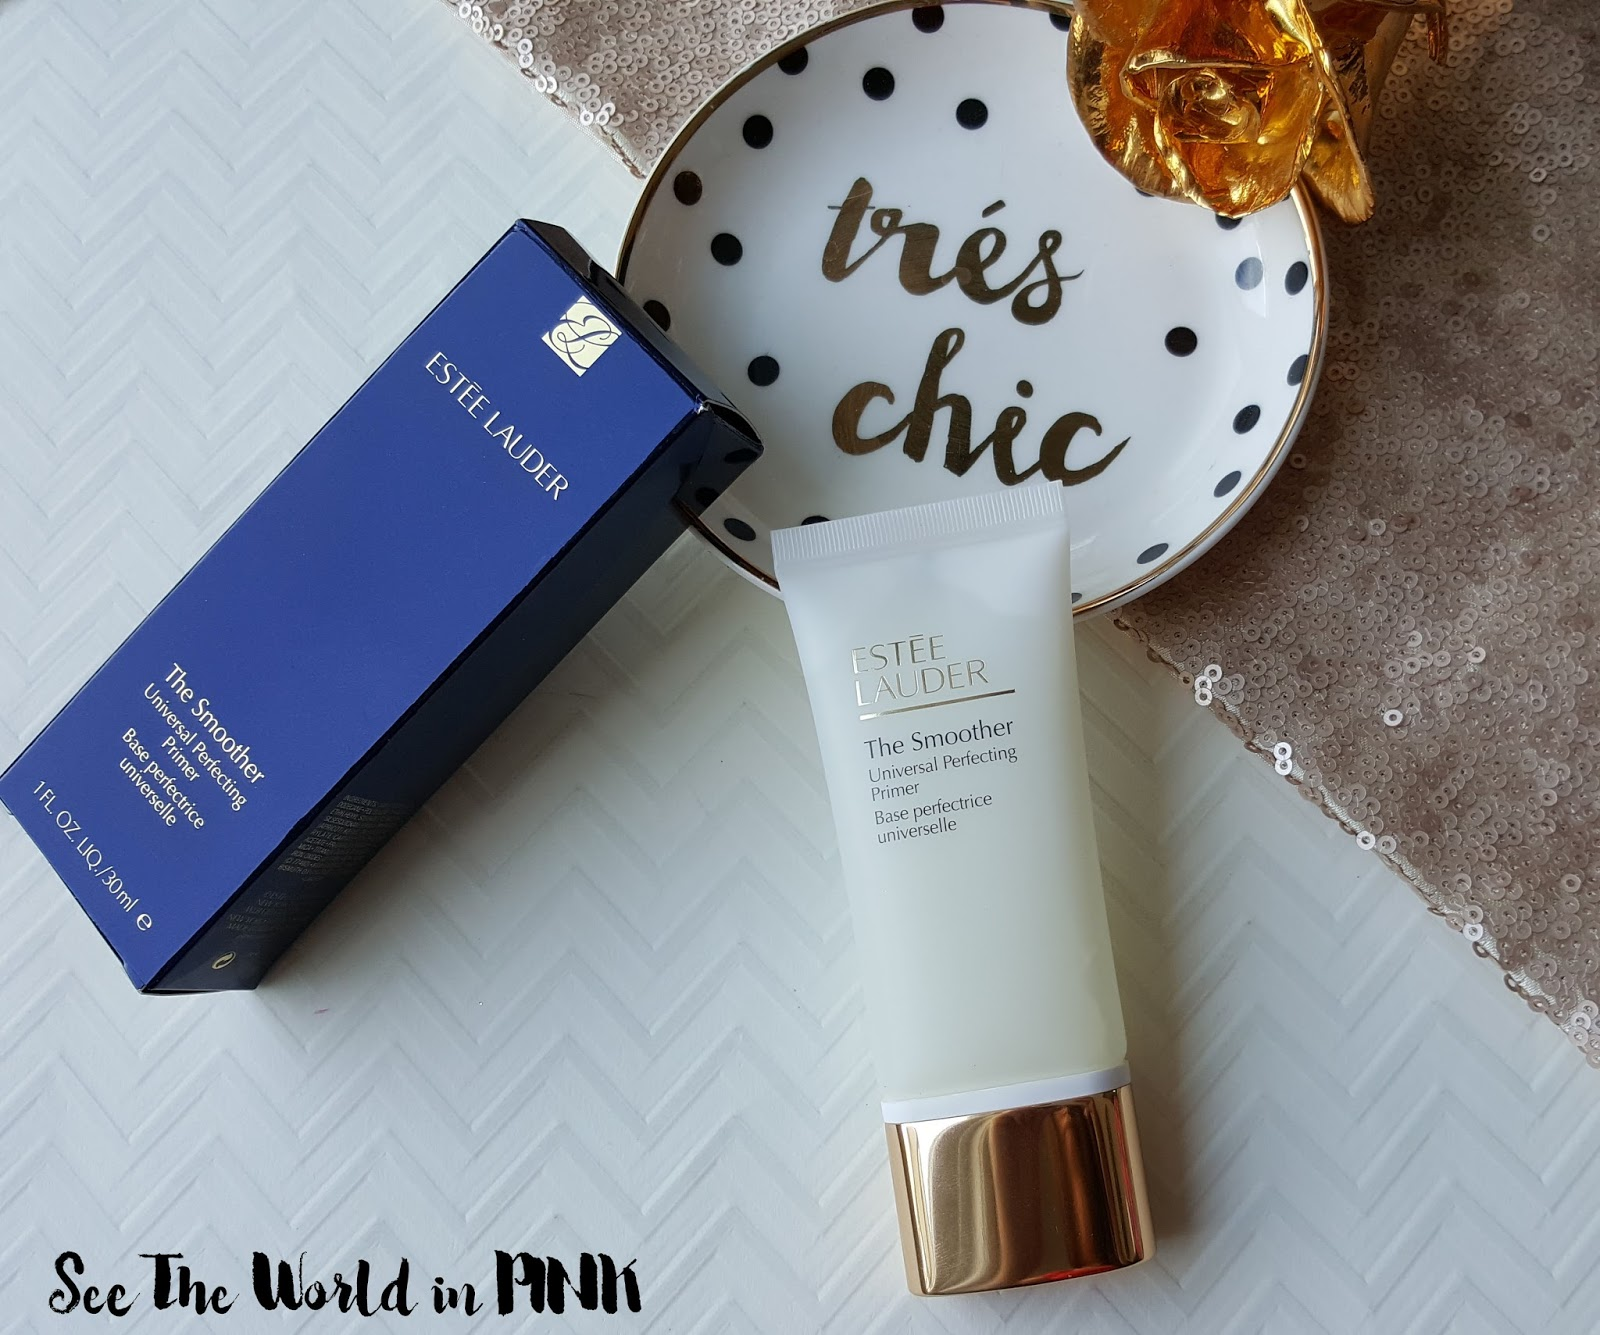 Estee Lauder - The Smoother Universal Perfecting Primer Review and Product Testing!